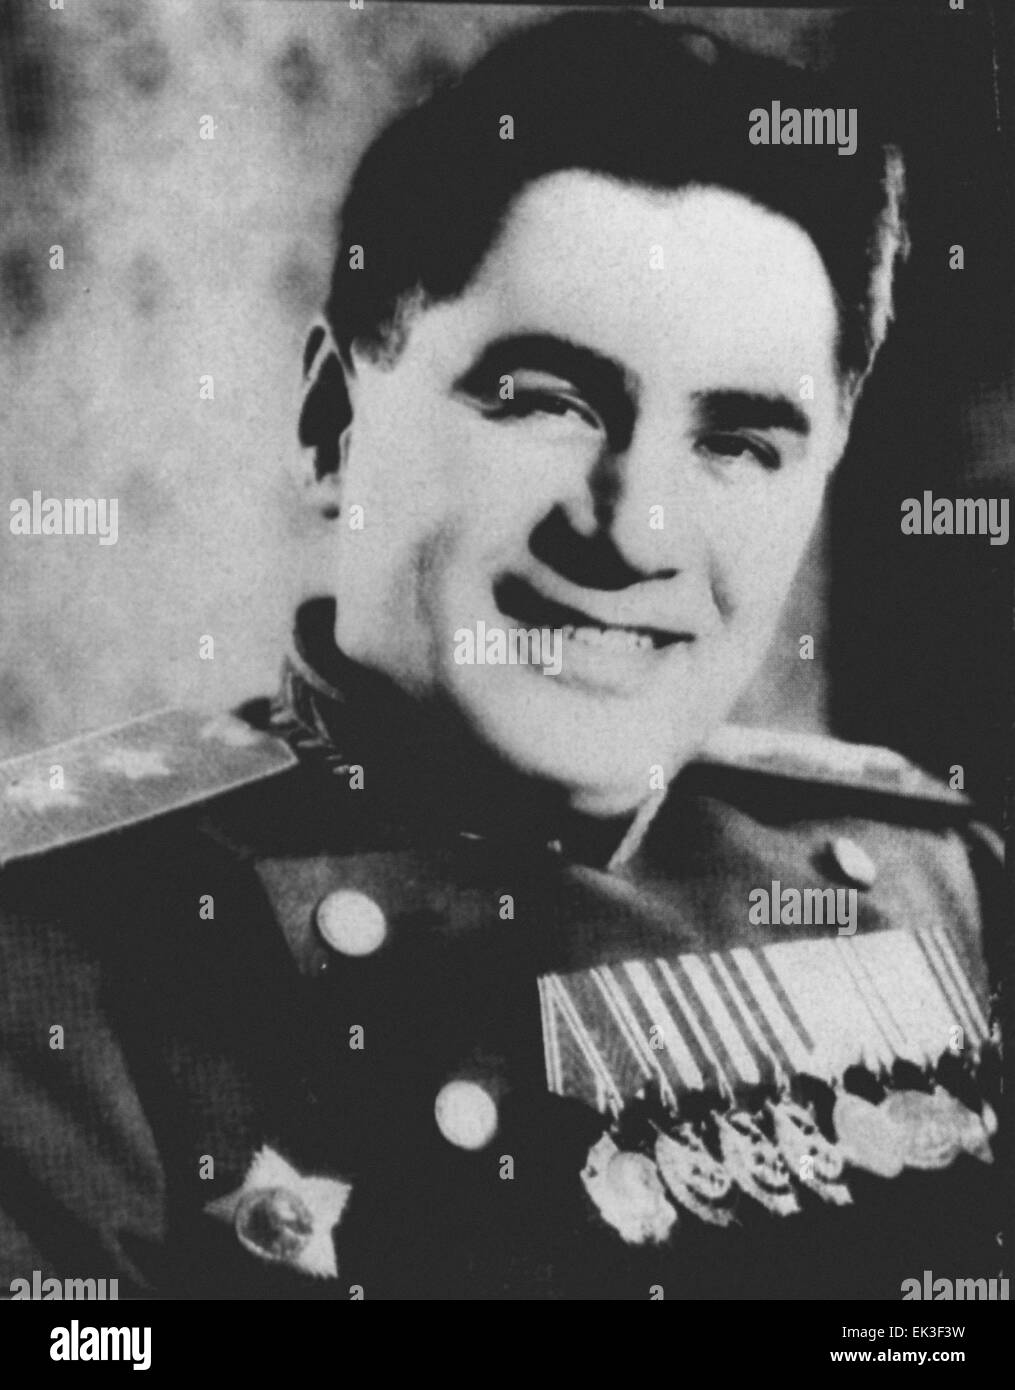 Pictured in this reproduced file image is Pavel Anatolyevich Sudoplatov 1907-1996, a KGB lieutenant general and - Stock Image